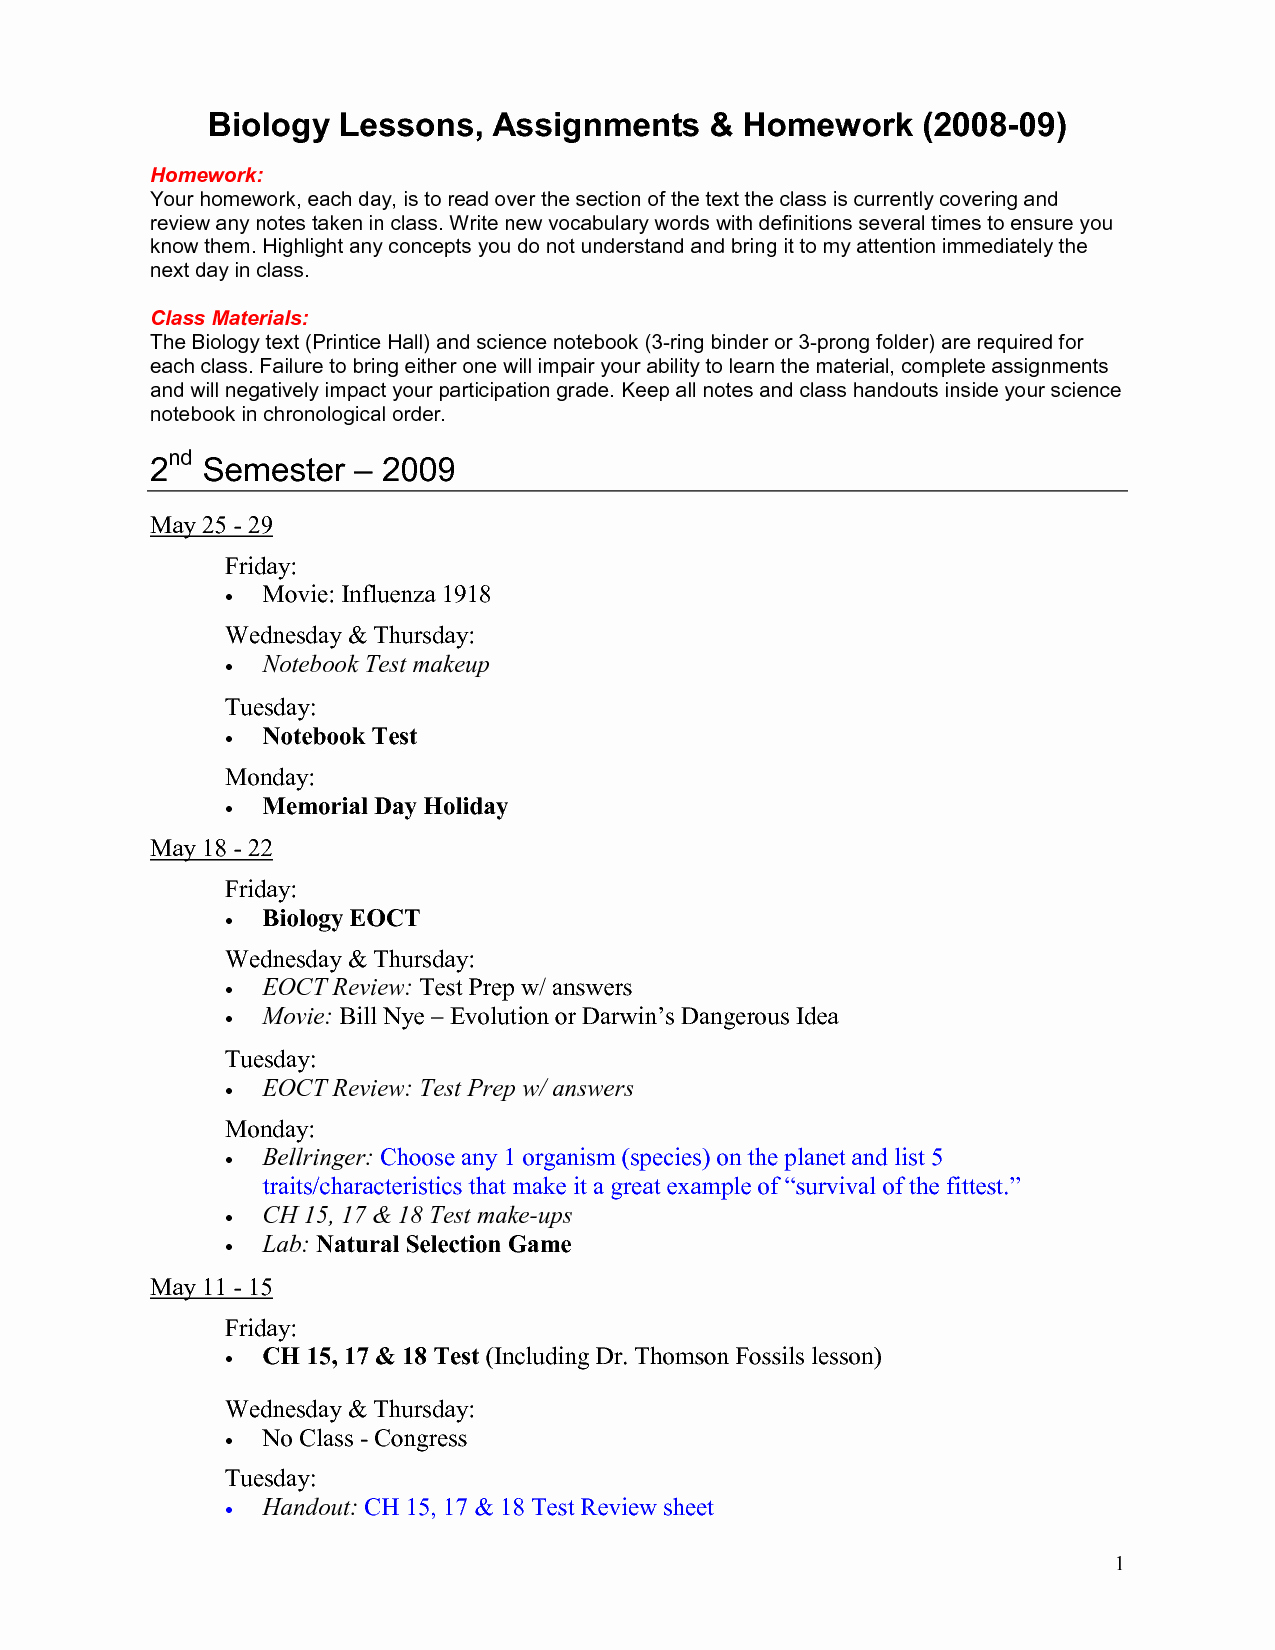 Scientific Method Worksheet Answer Key Luxury 12 Best Of Scientific Method Worksheet Answer Key